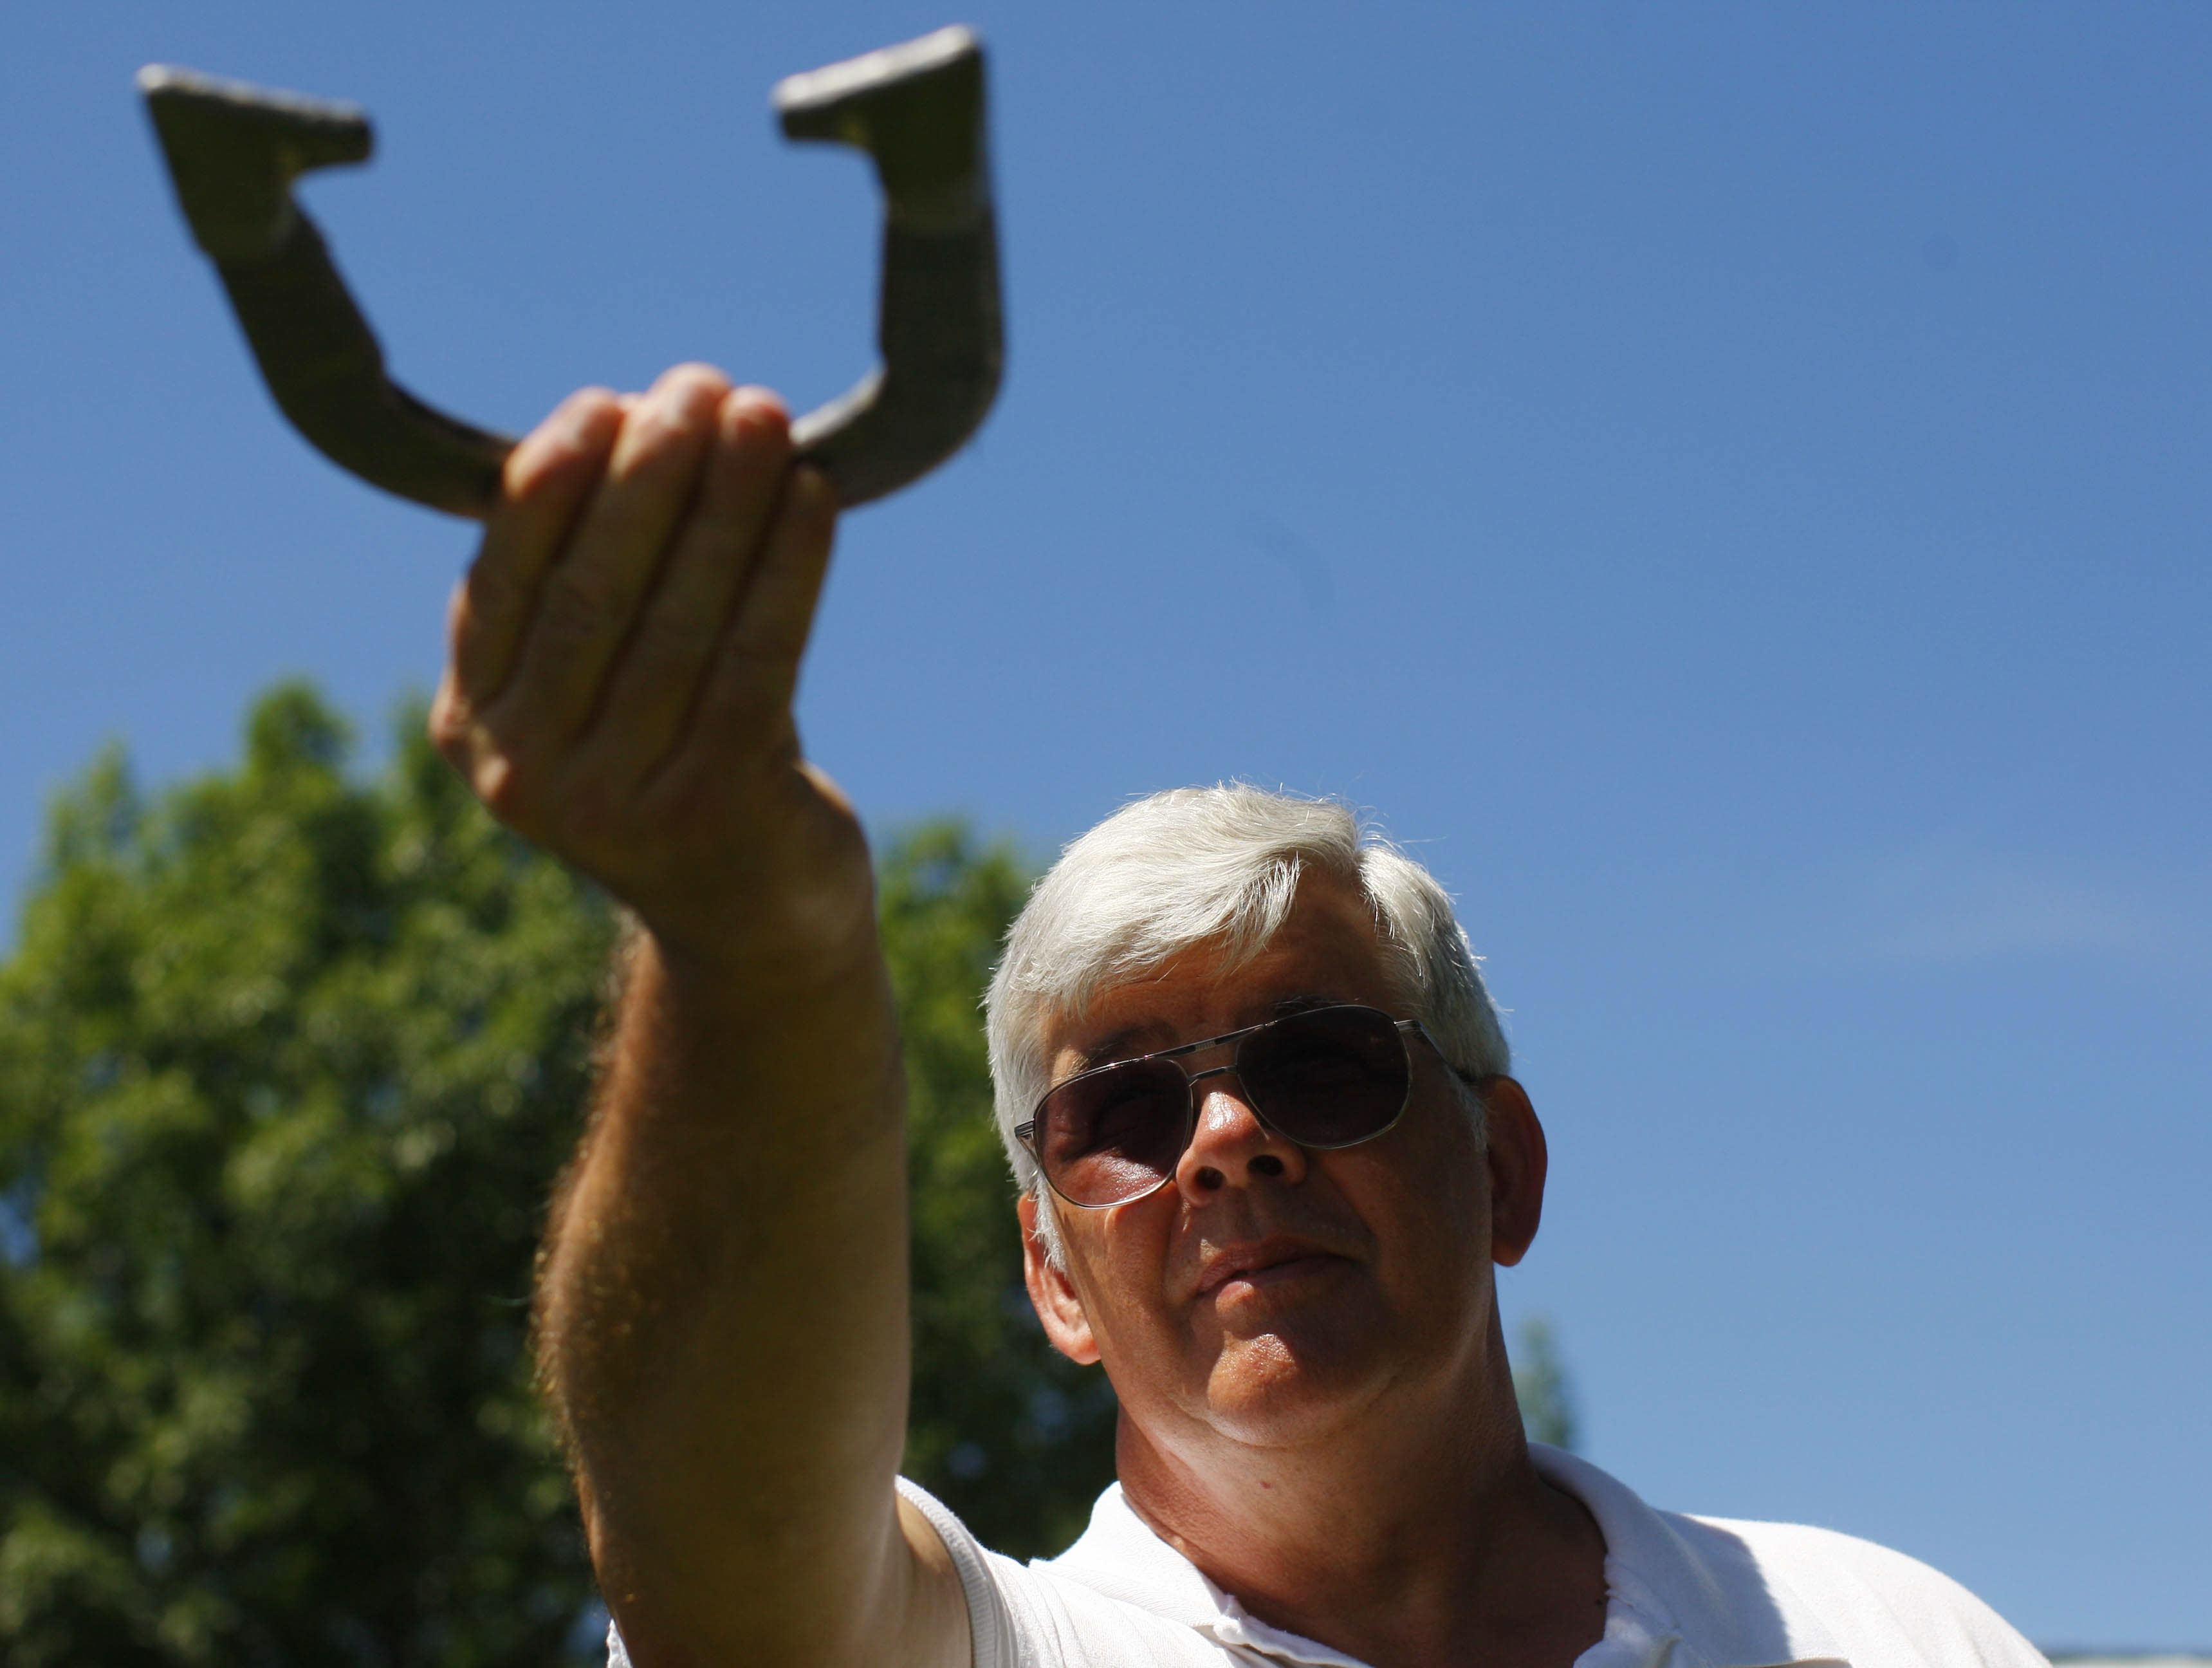 Competitive horseshoe pitcher Frank Kwiatkowski, who played a role in organizing the 2014 World Horseshoe Pitching Championship coming to the Fairgrounds next month, practices his game in the backyard of his Lakeview home.